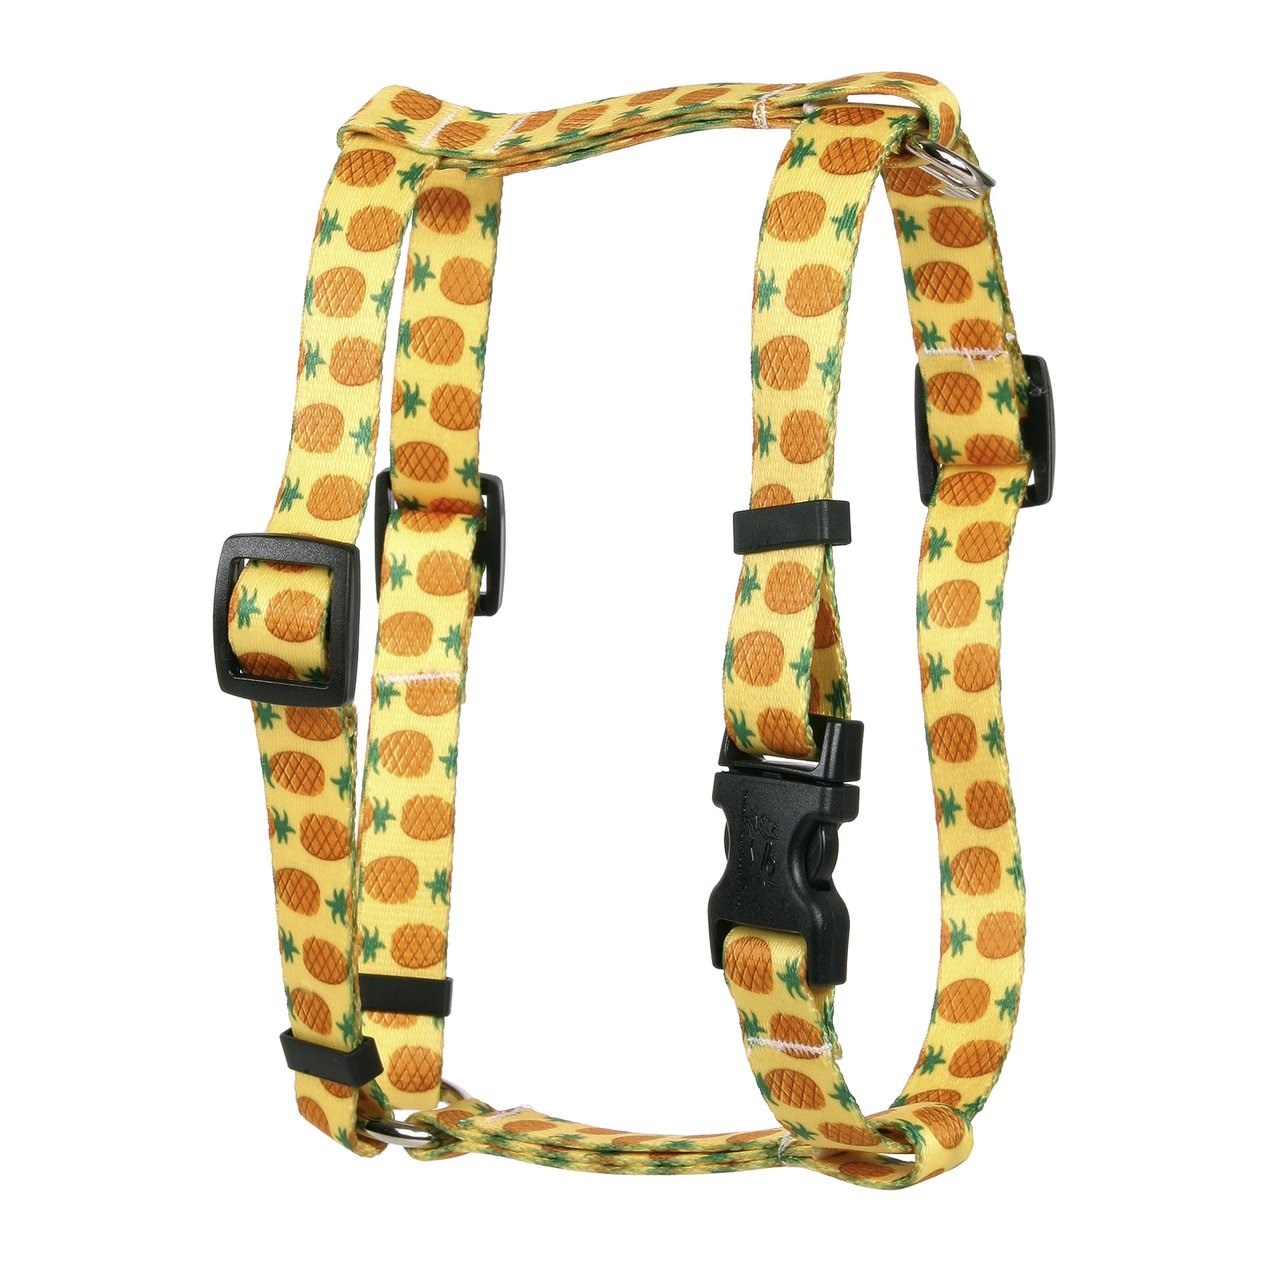 Yellow Dog Design Pineapples Yellow Roman Style H Dog Harness, X-Small-3/8 Wide fits Chest of 8 to 14'' by Yellow Dog Design